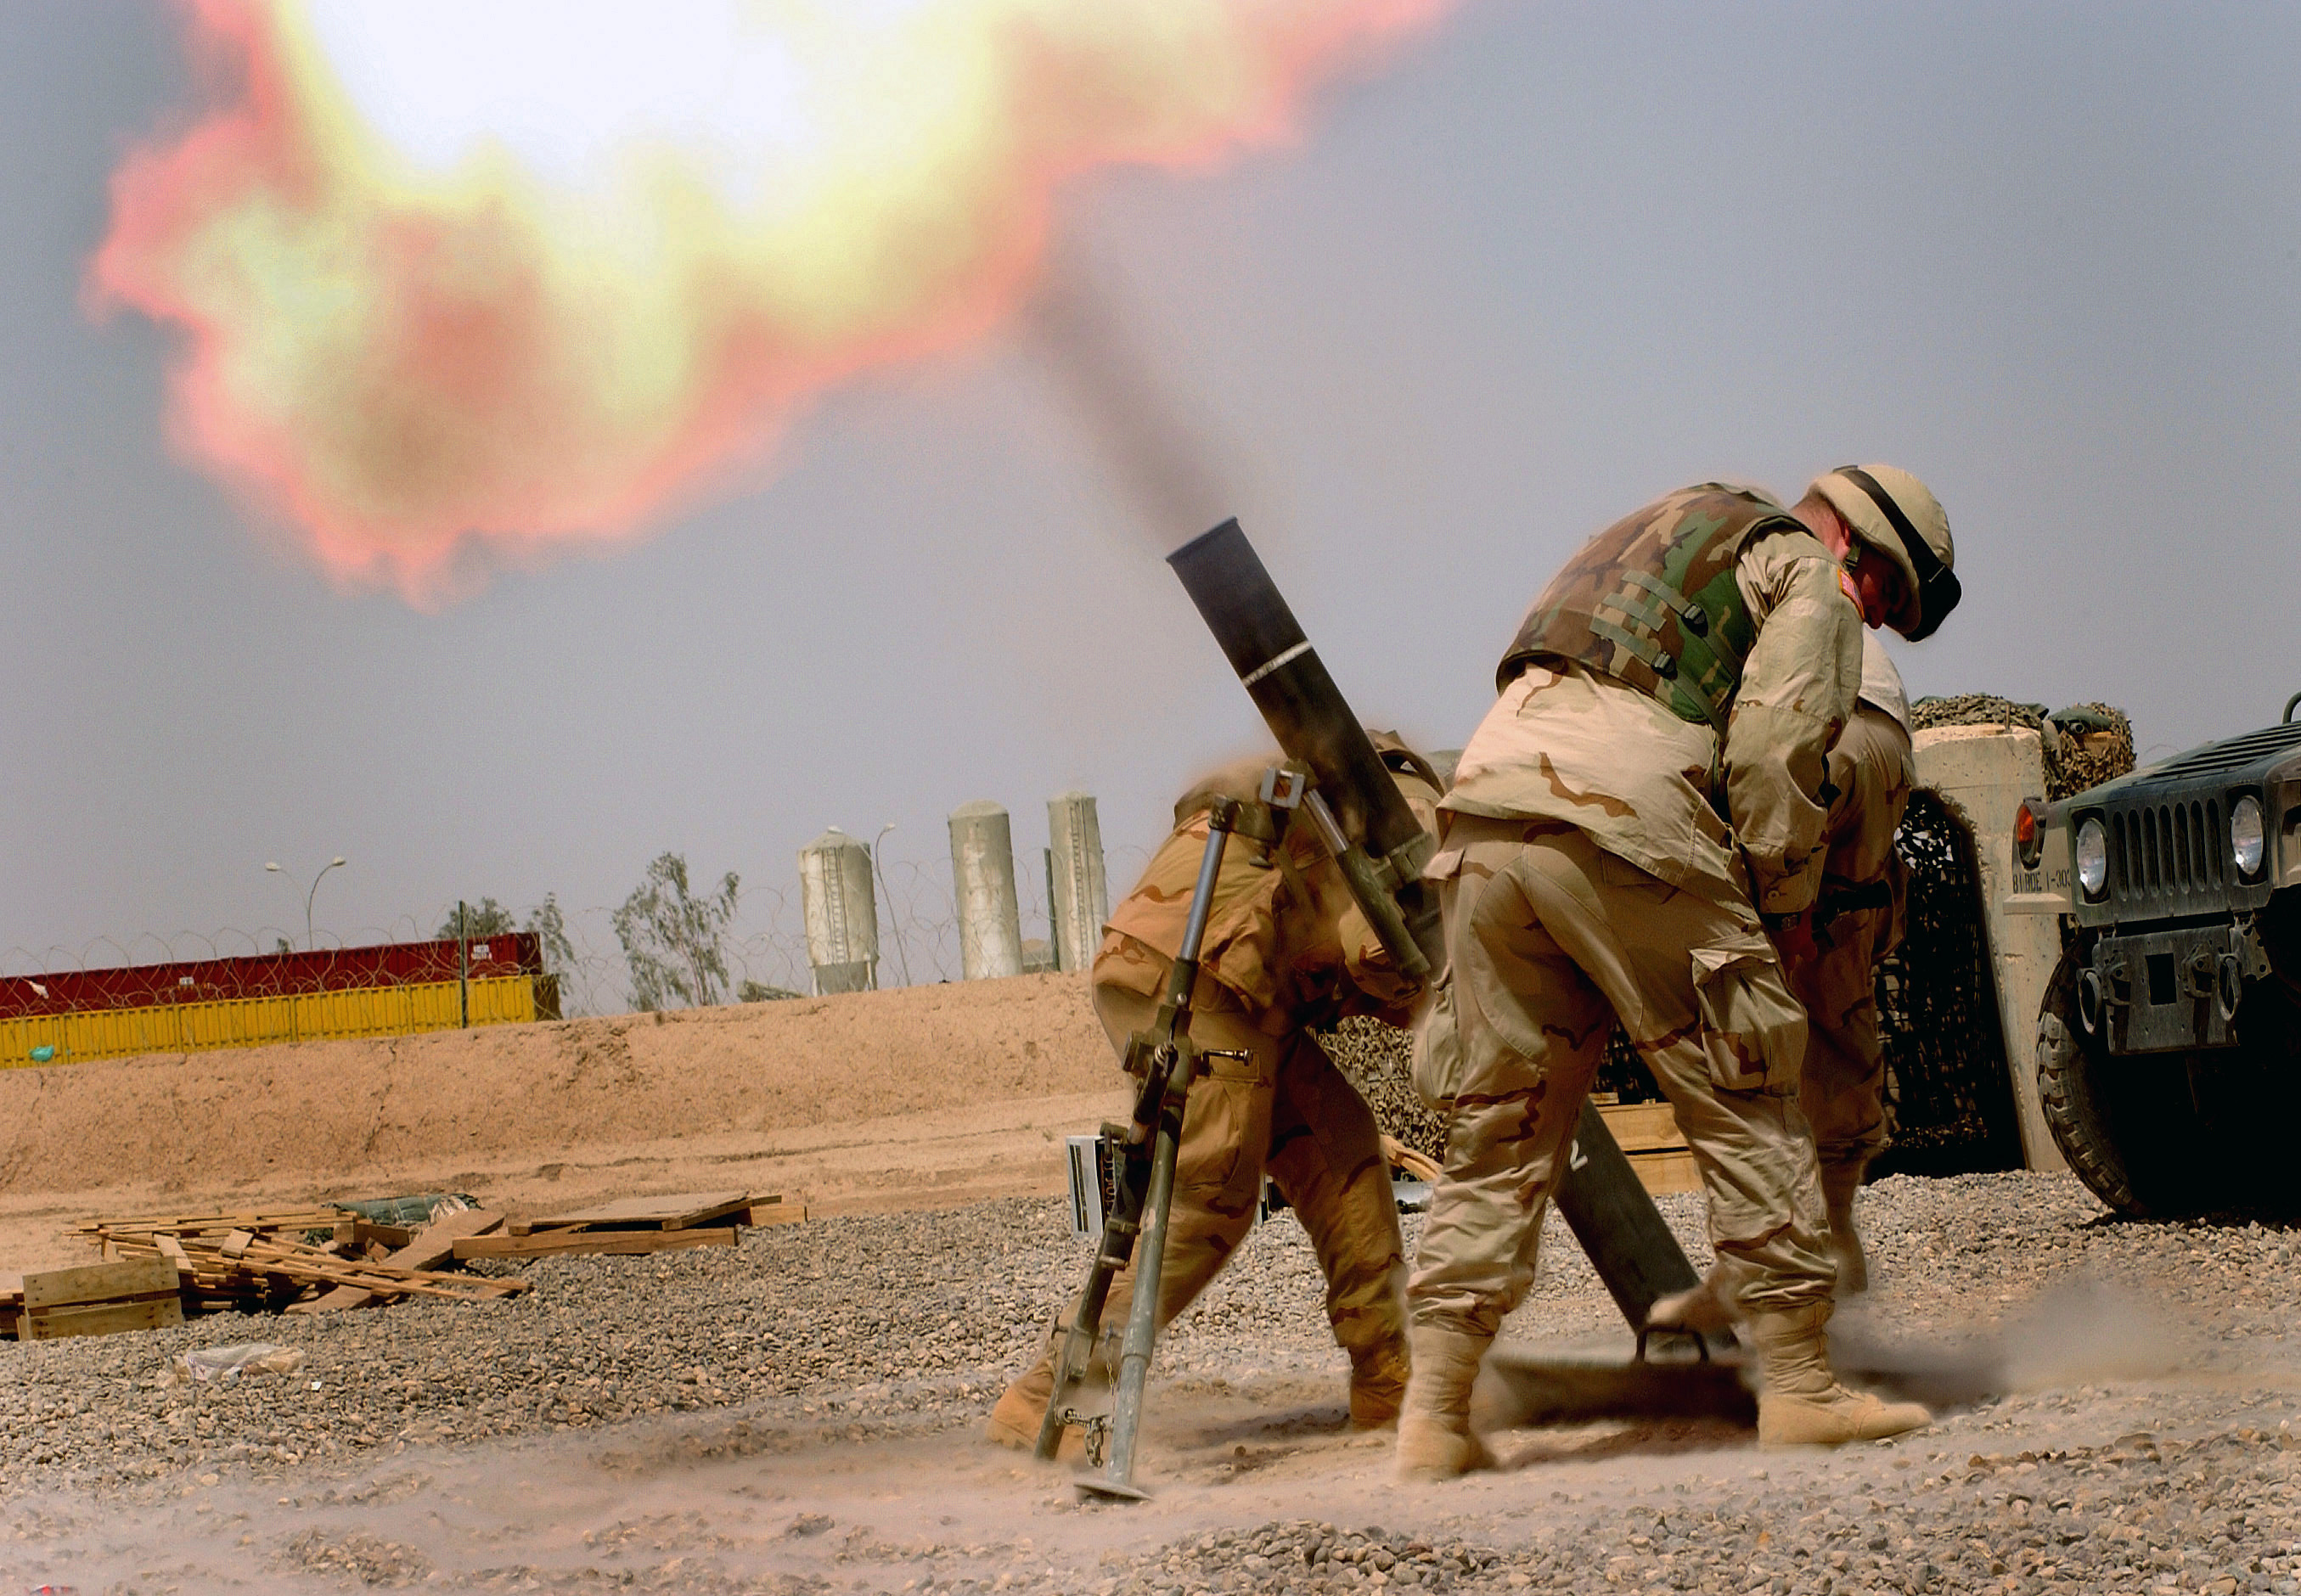 What were the reasons for starting the war in Iraq?